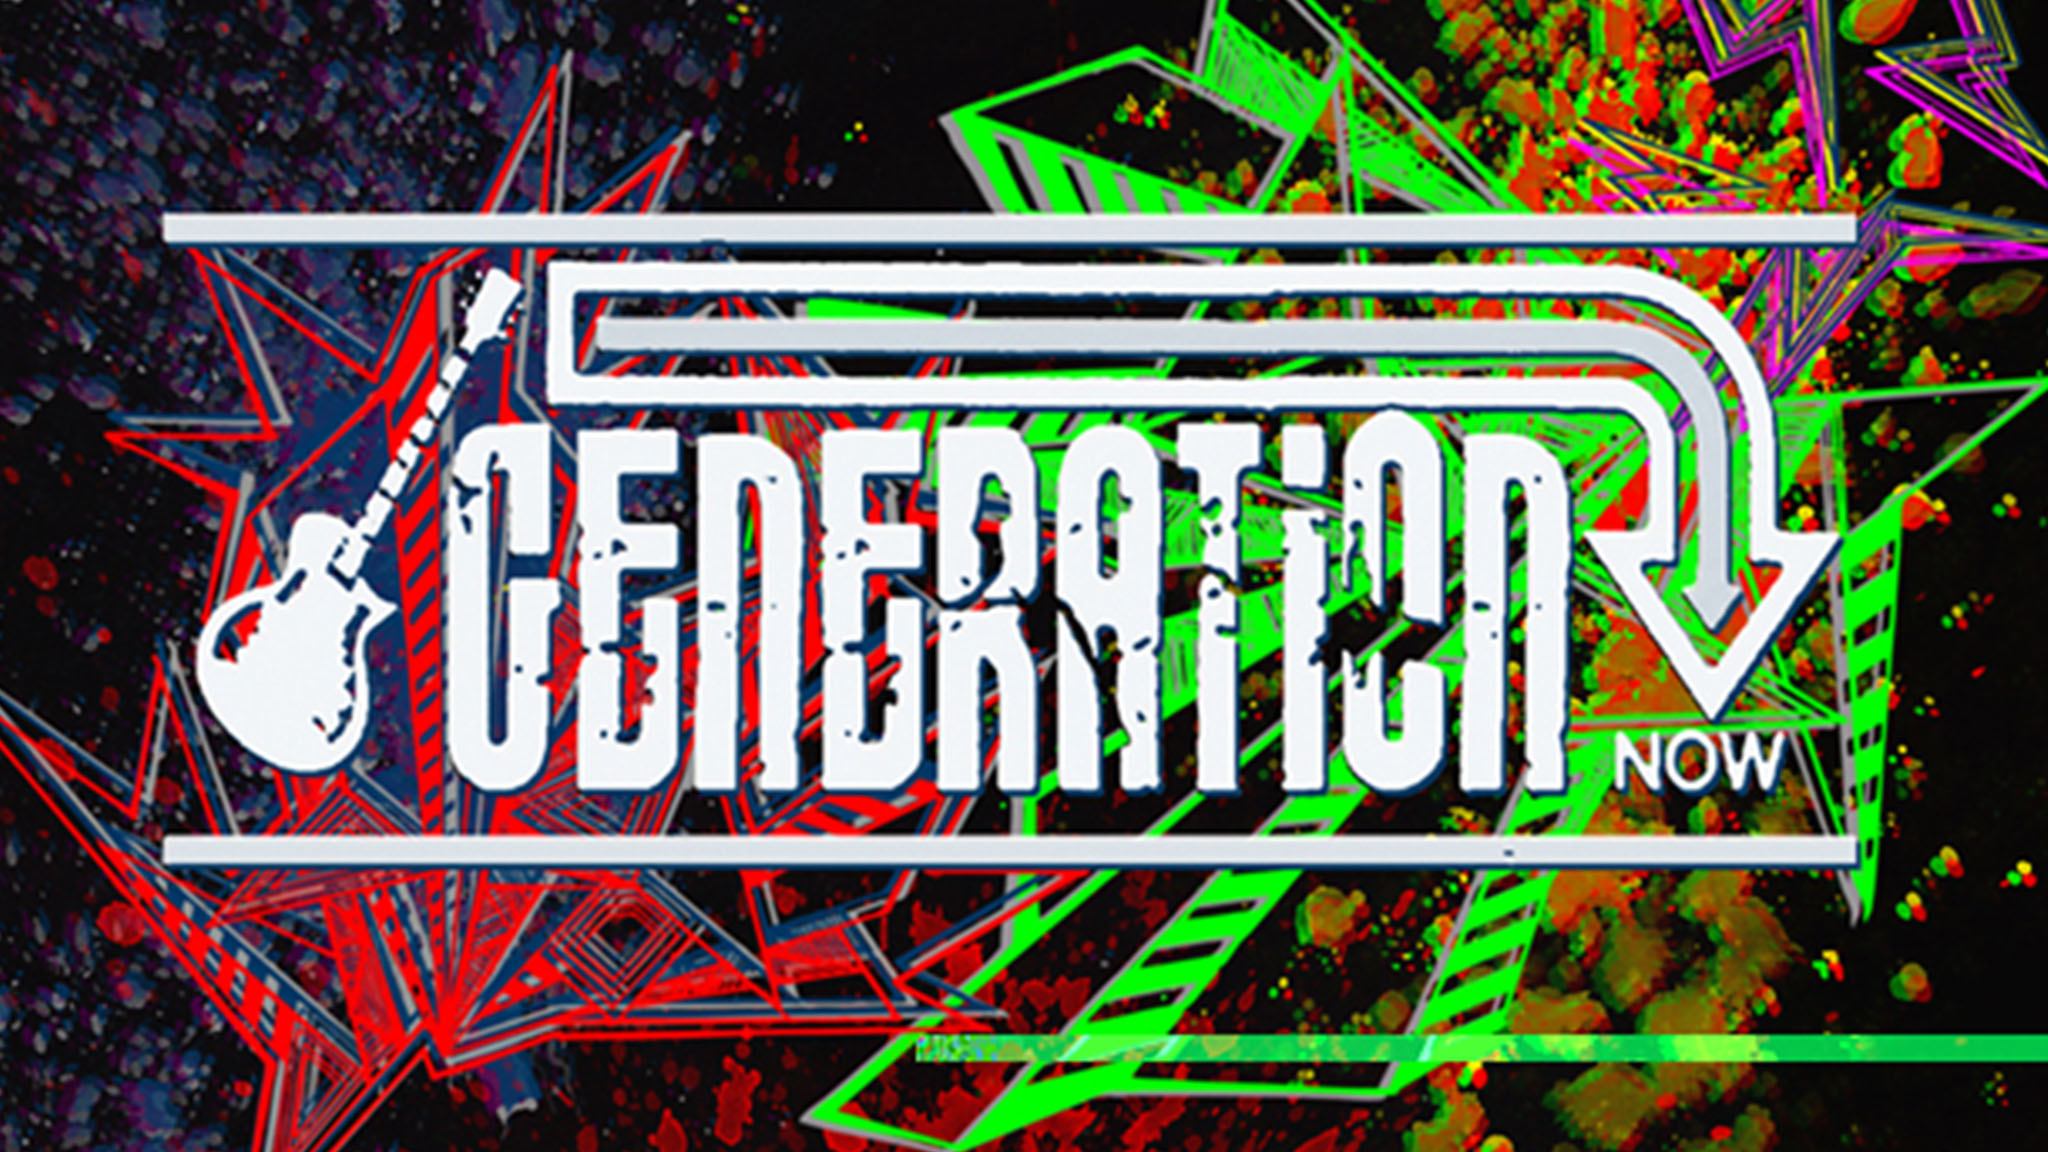 Generation now art work